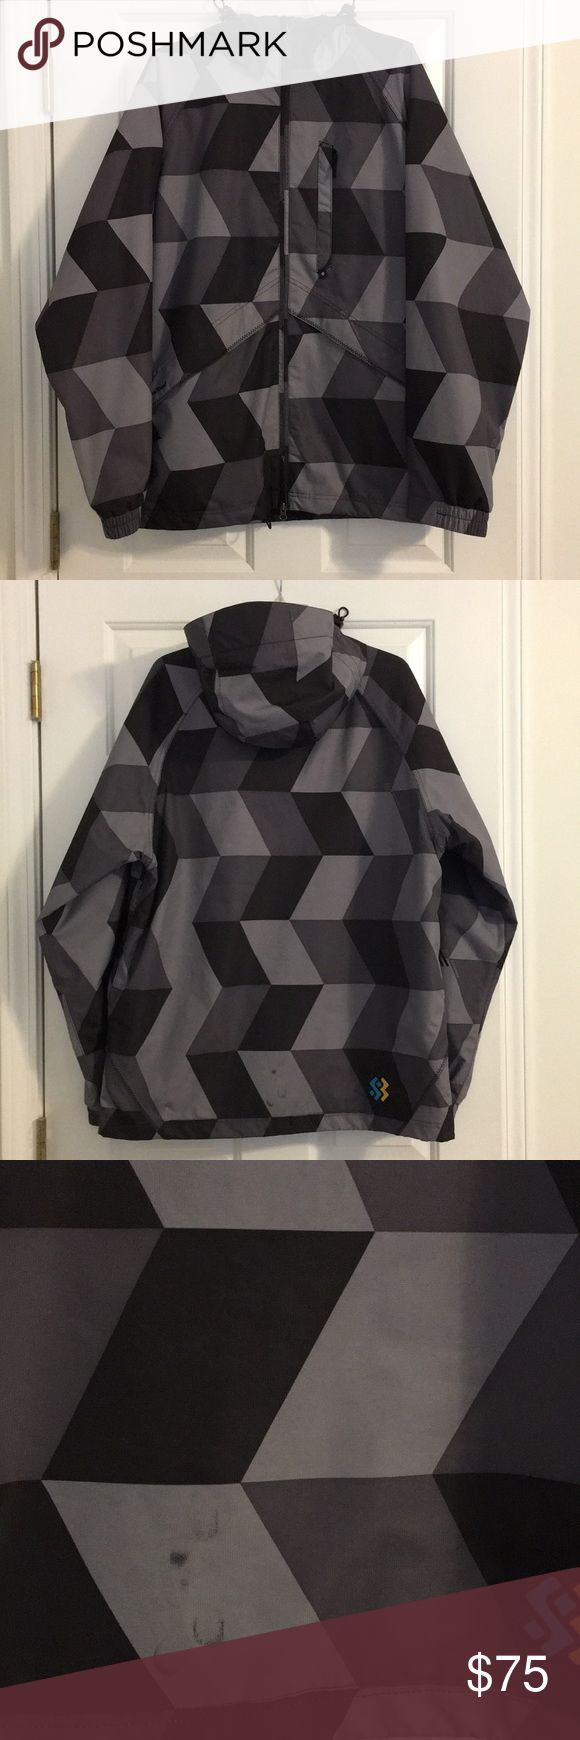 Special Blend Men's 15K Ski/Snowboard Jacket Black and gray geometric design. Underarm vents. Good condition. Small stain on back of jacket near bottom (see picture). Special Blend Jackets & Coats Ski & Snowboard